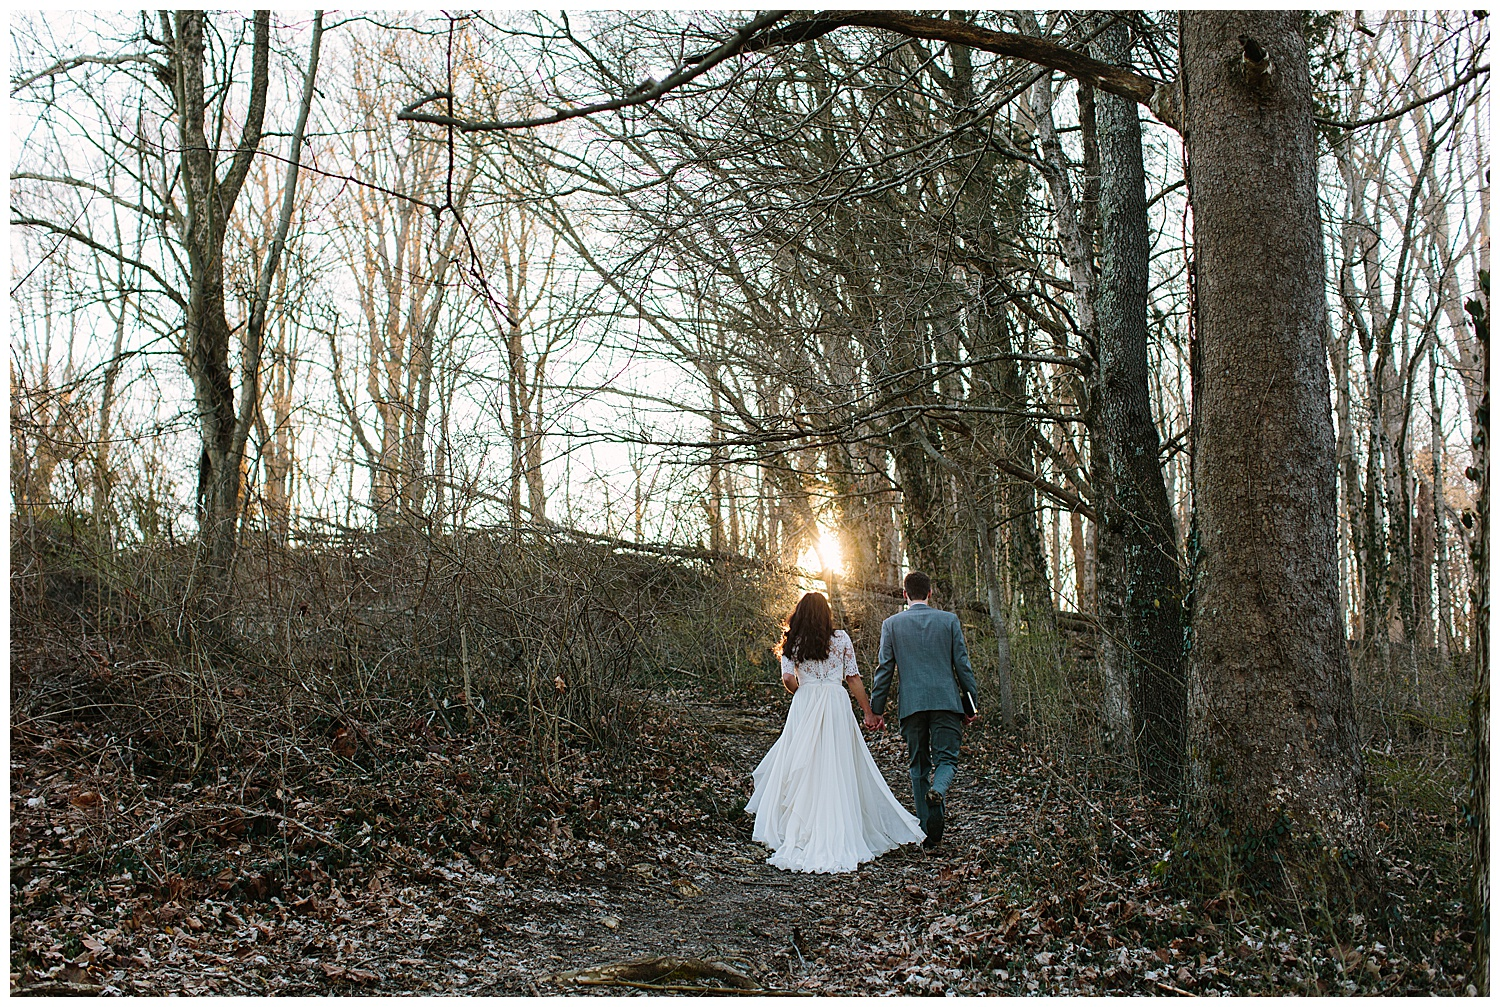 trent.and.kendra.photography.foxhollow.farm.elopement-62.jpg